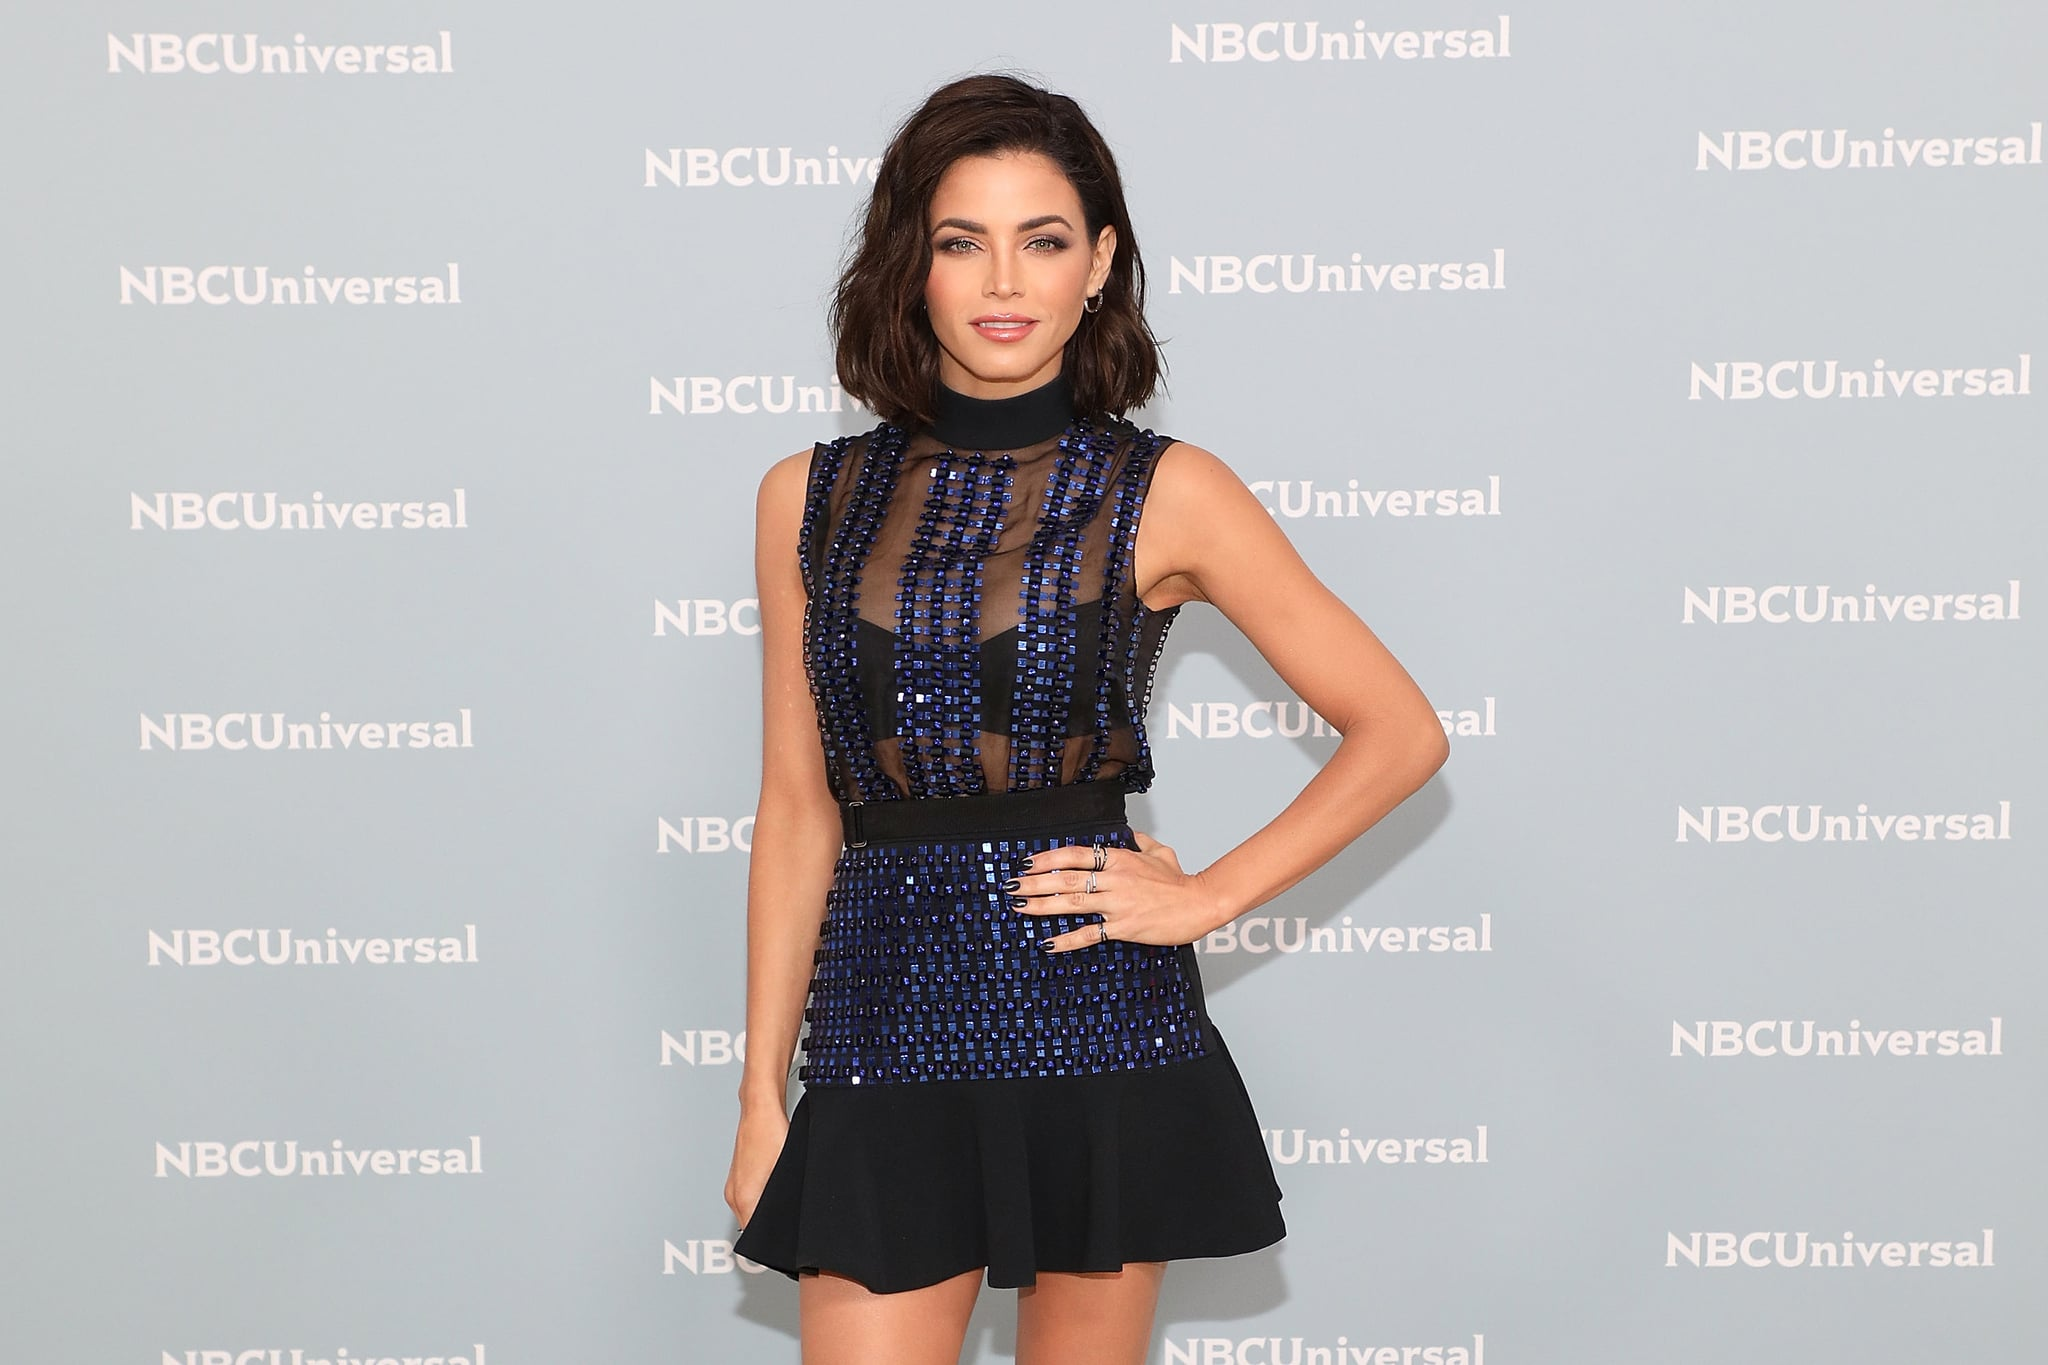 NEW YORK, NY - MAY 14:  Jenna Dewan attends the 2018 NBCUniversal Upfront Presentation at Rockefeller Center on May 14, 2018 in New York City.  (Photo by Taylor Hill/FilmMagic)